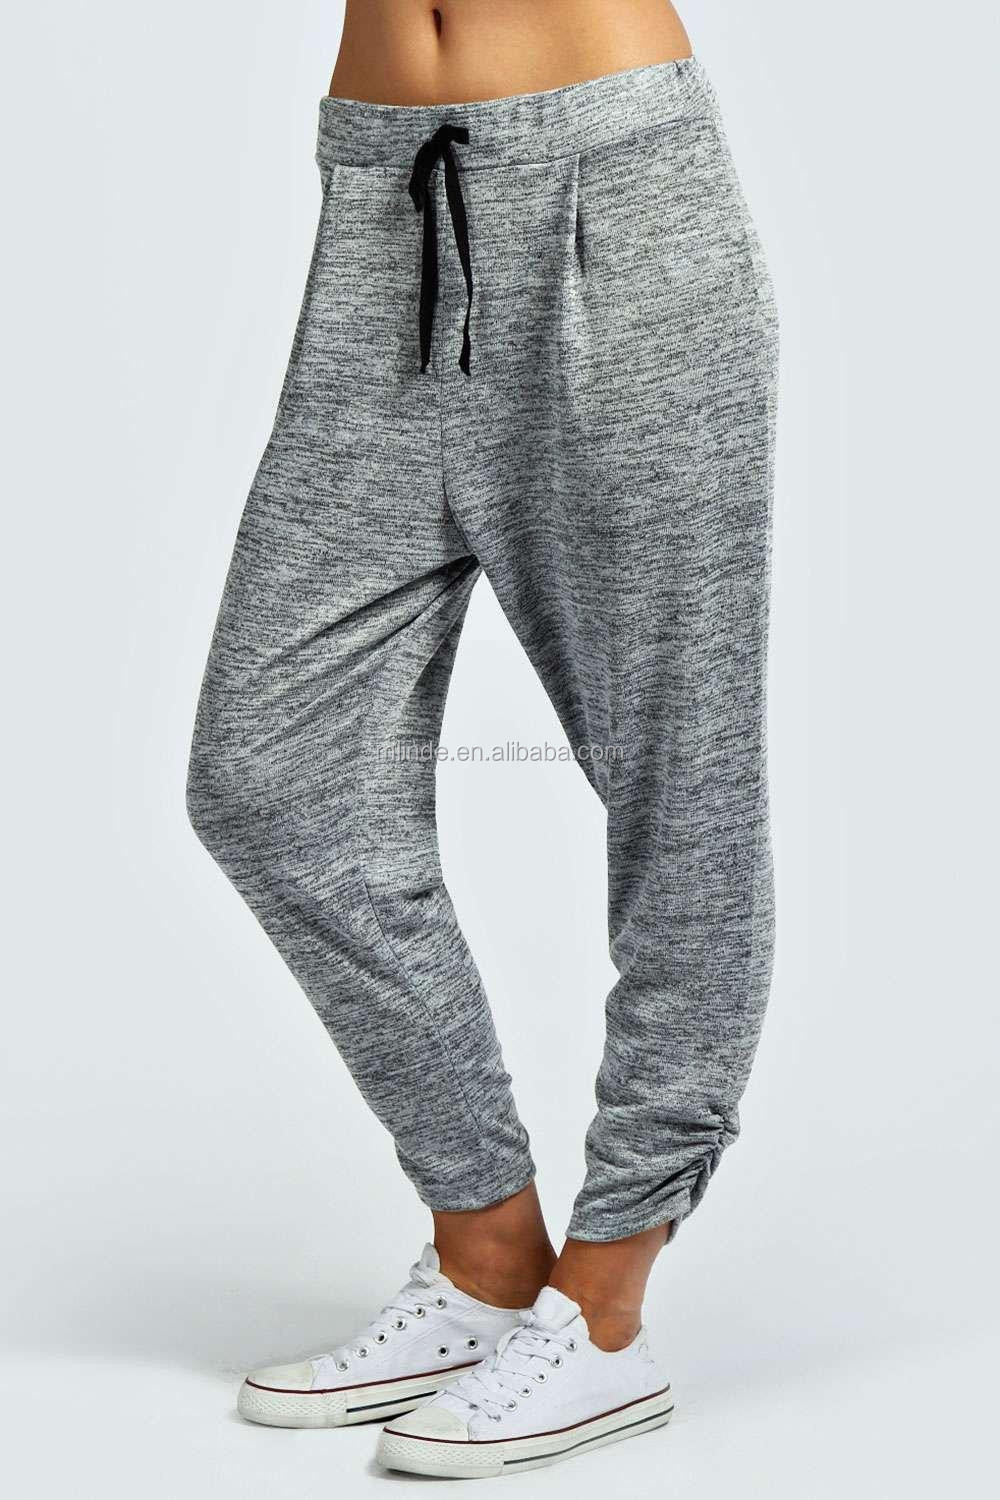 matching in colour most desirable fashion fashionable and attractive package Yoga Pants Knitted Jogger Grey Pleated Comfortable Baggy Fit Fitness Jogger  Pants Women - Buy Fashion Jogger Pants,Grey Pleated Baggy Fit Fitness ...